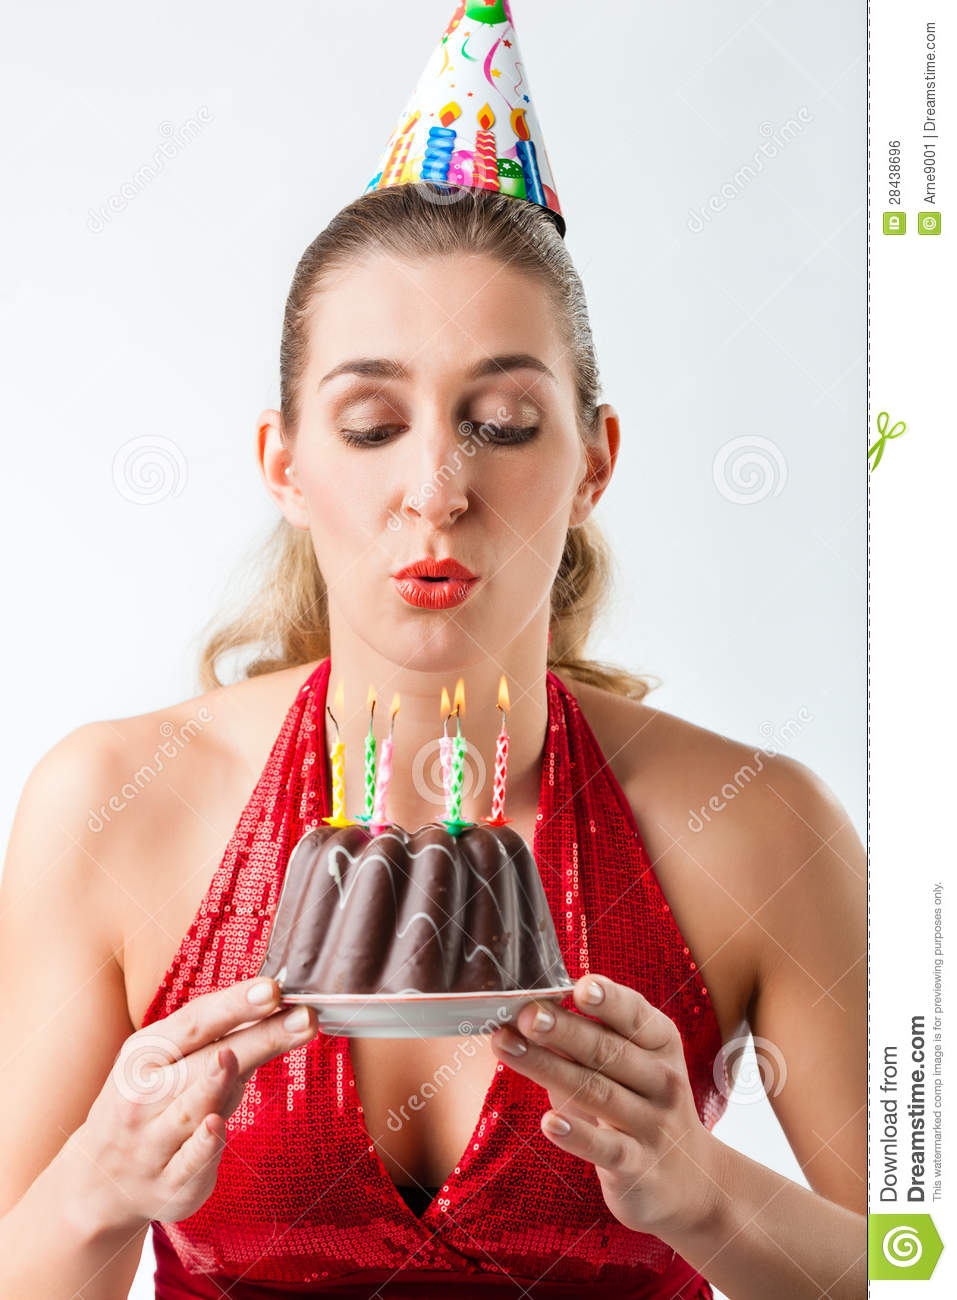 Woman celebrating birthday with cake blowing candles out